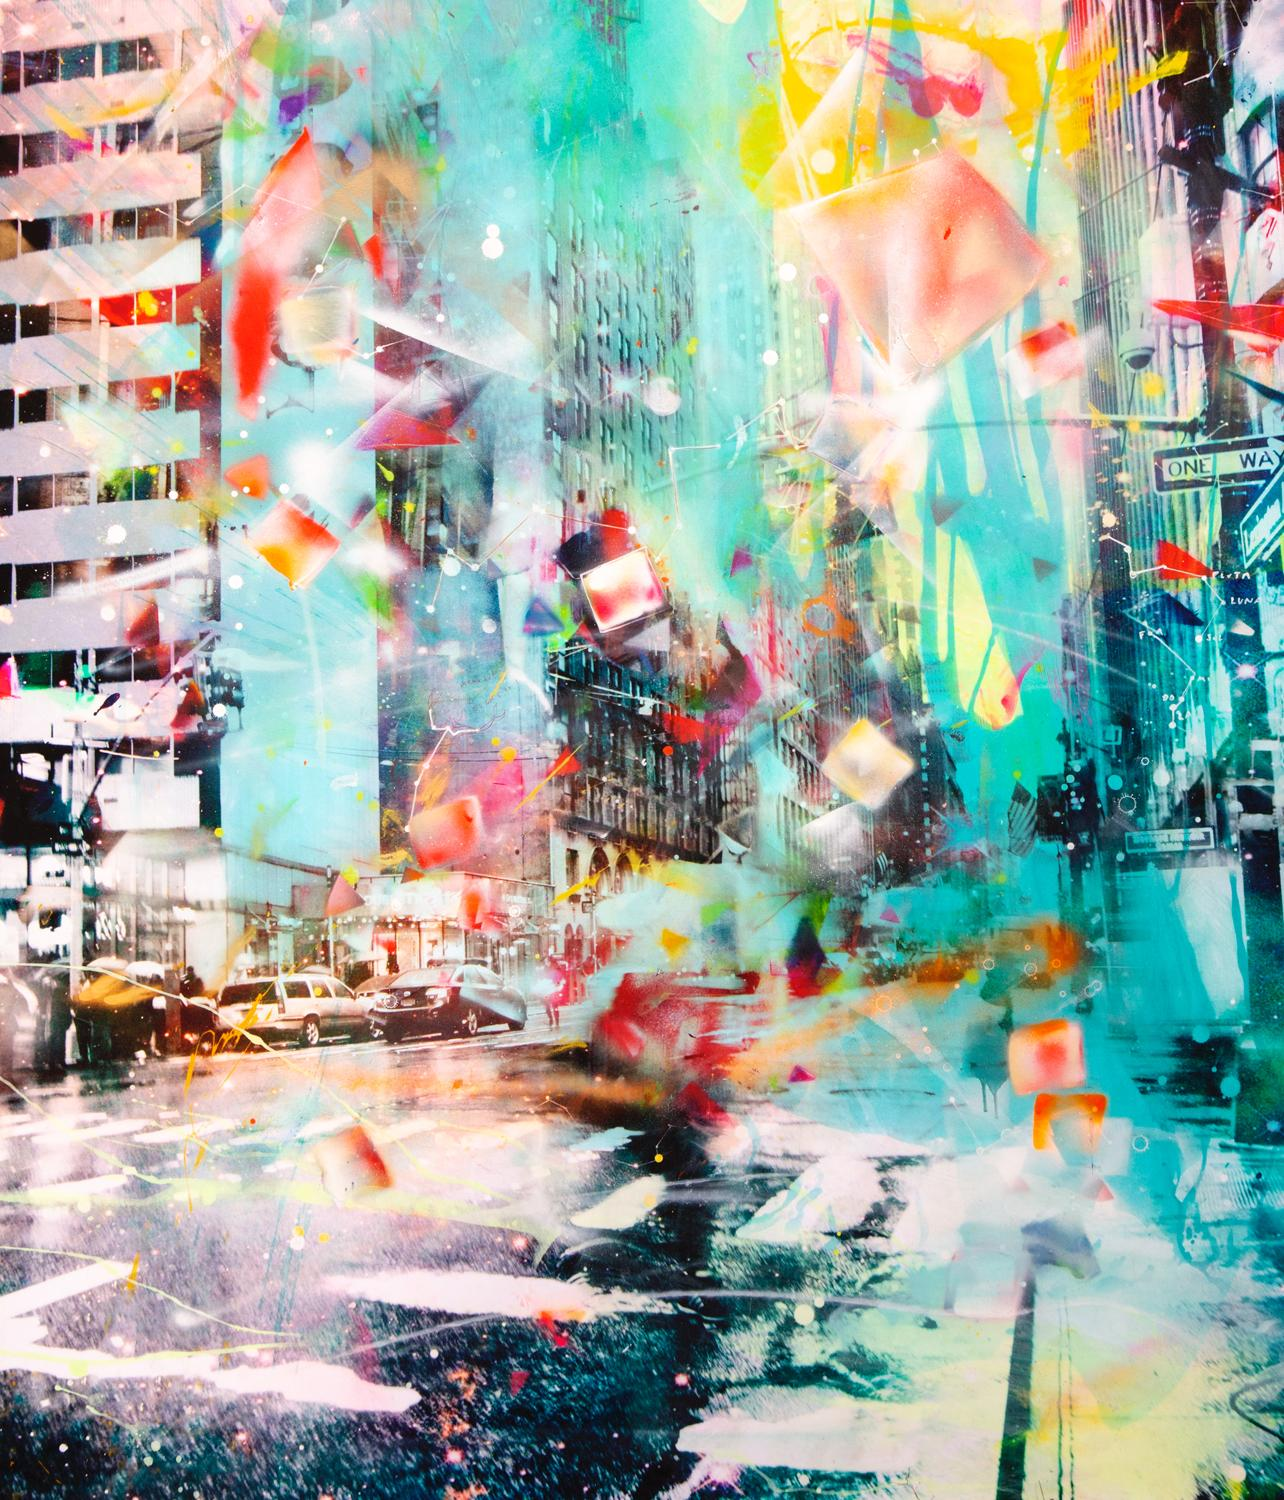 Double Tree - colorful handpainted photography, New York scene, contemporary